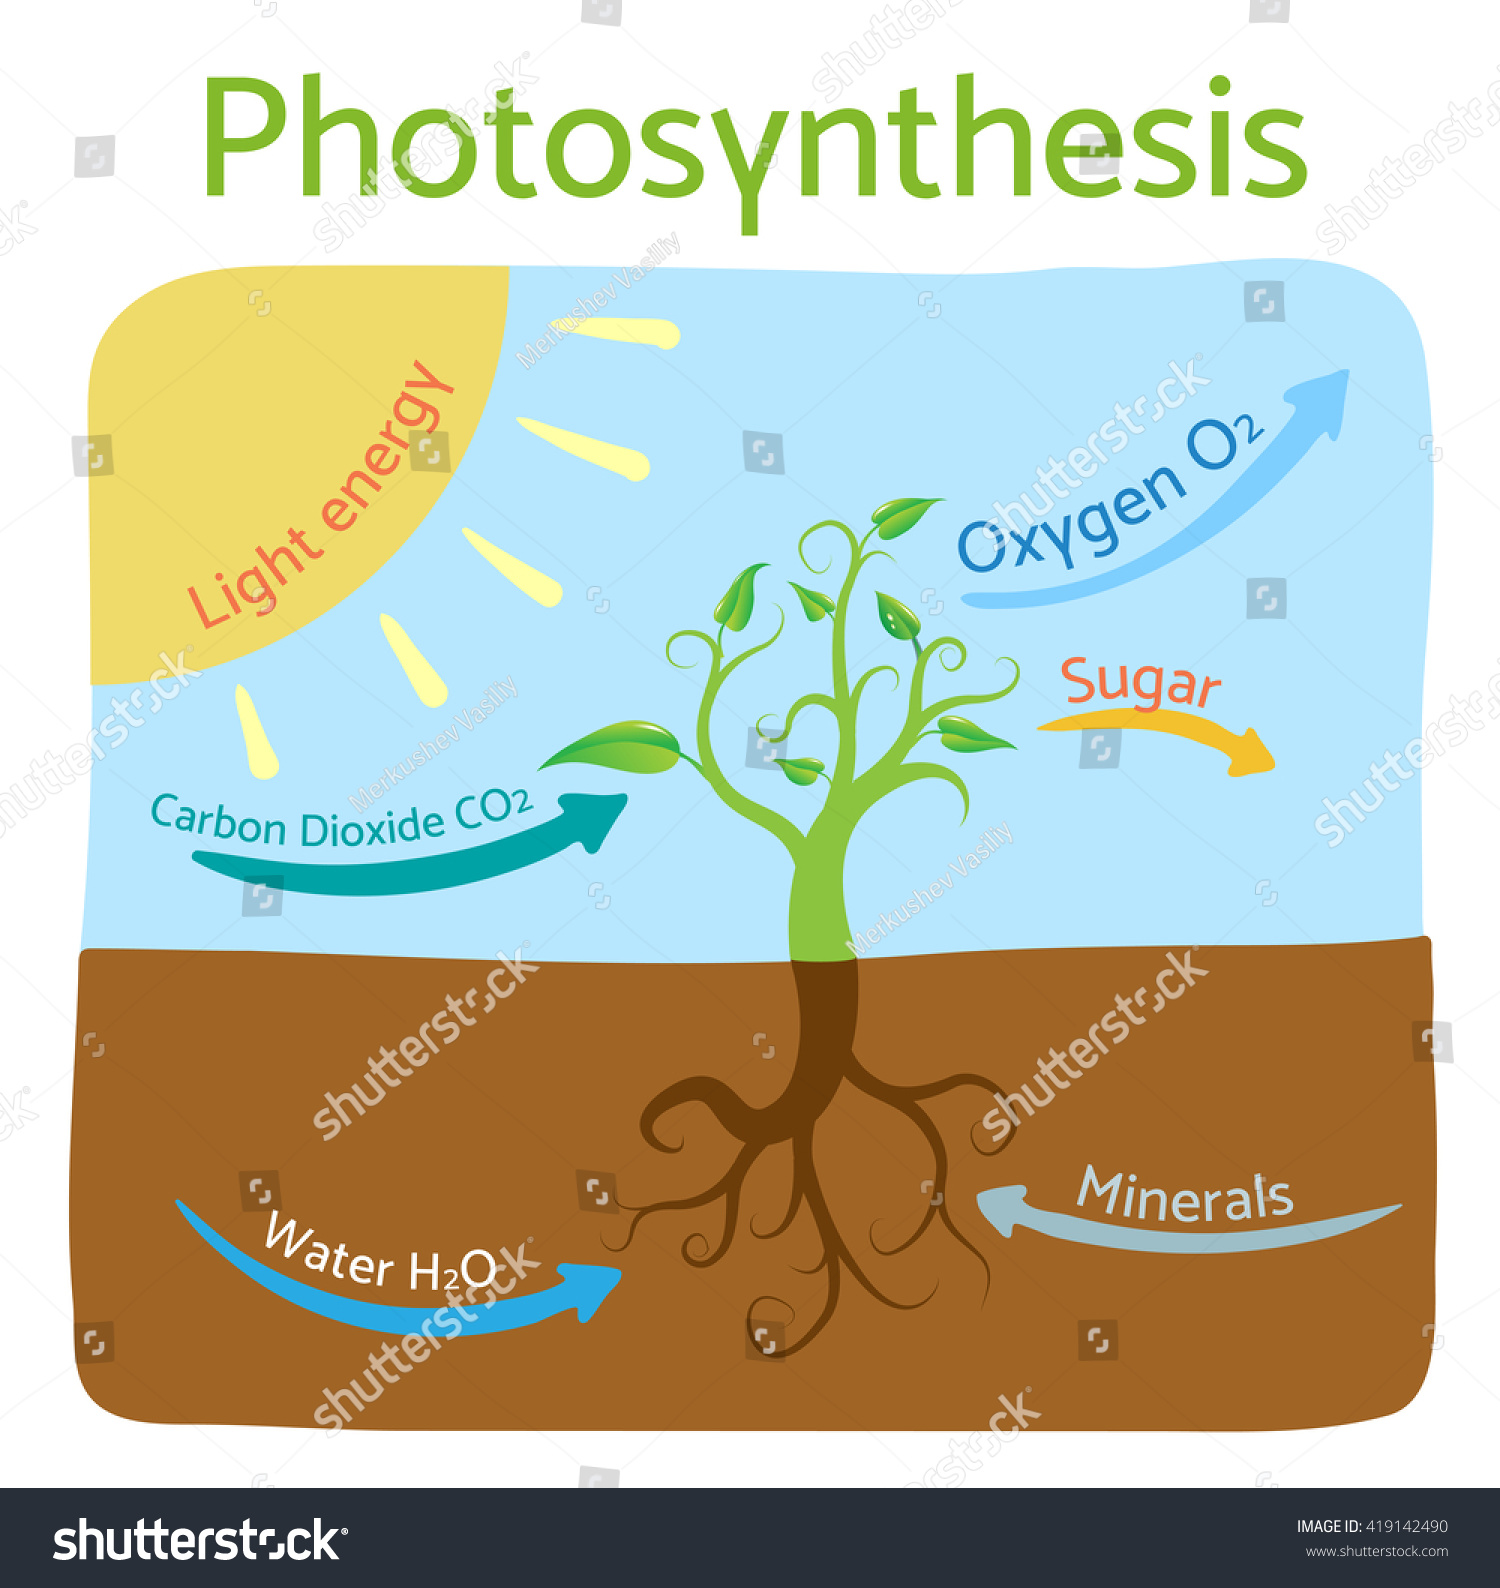 Photosynthesis diagram schematic vector illustration photosynthesis diagram schematic vector illustration of the photosynthetic process pooptronica Choice Image